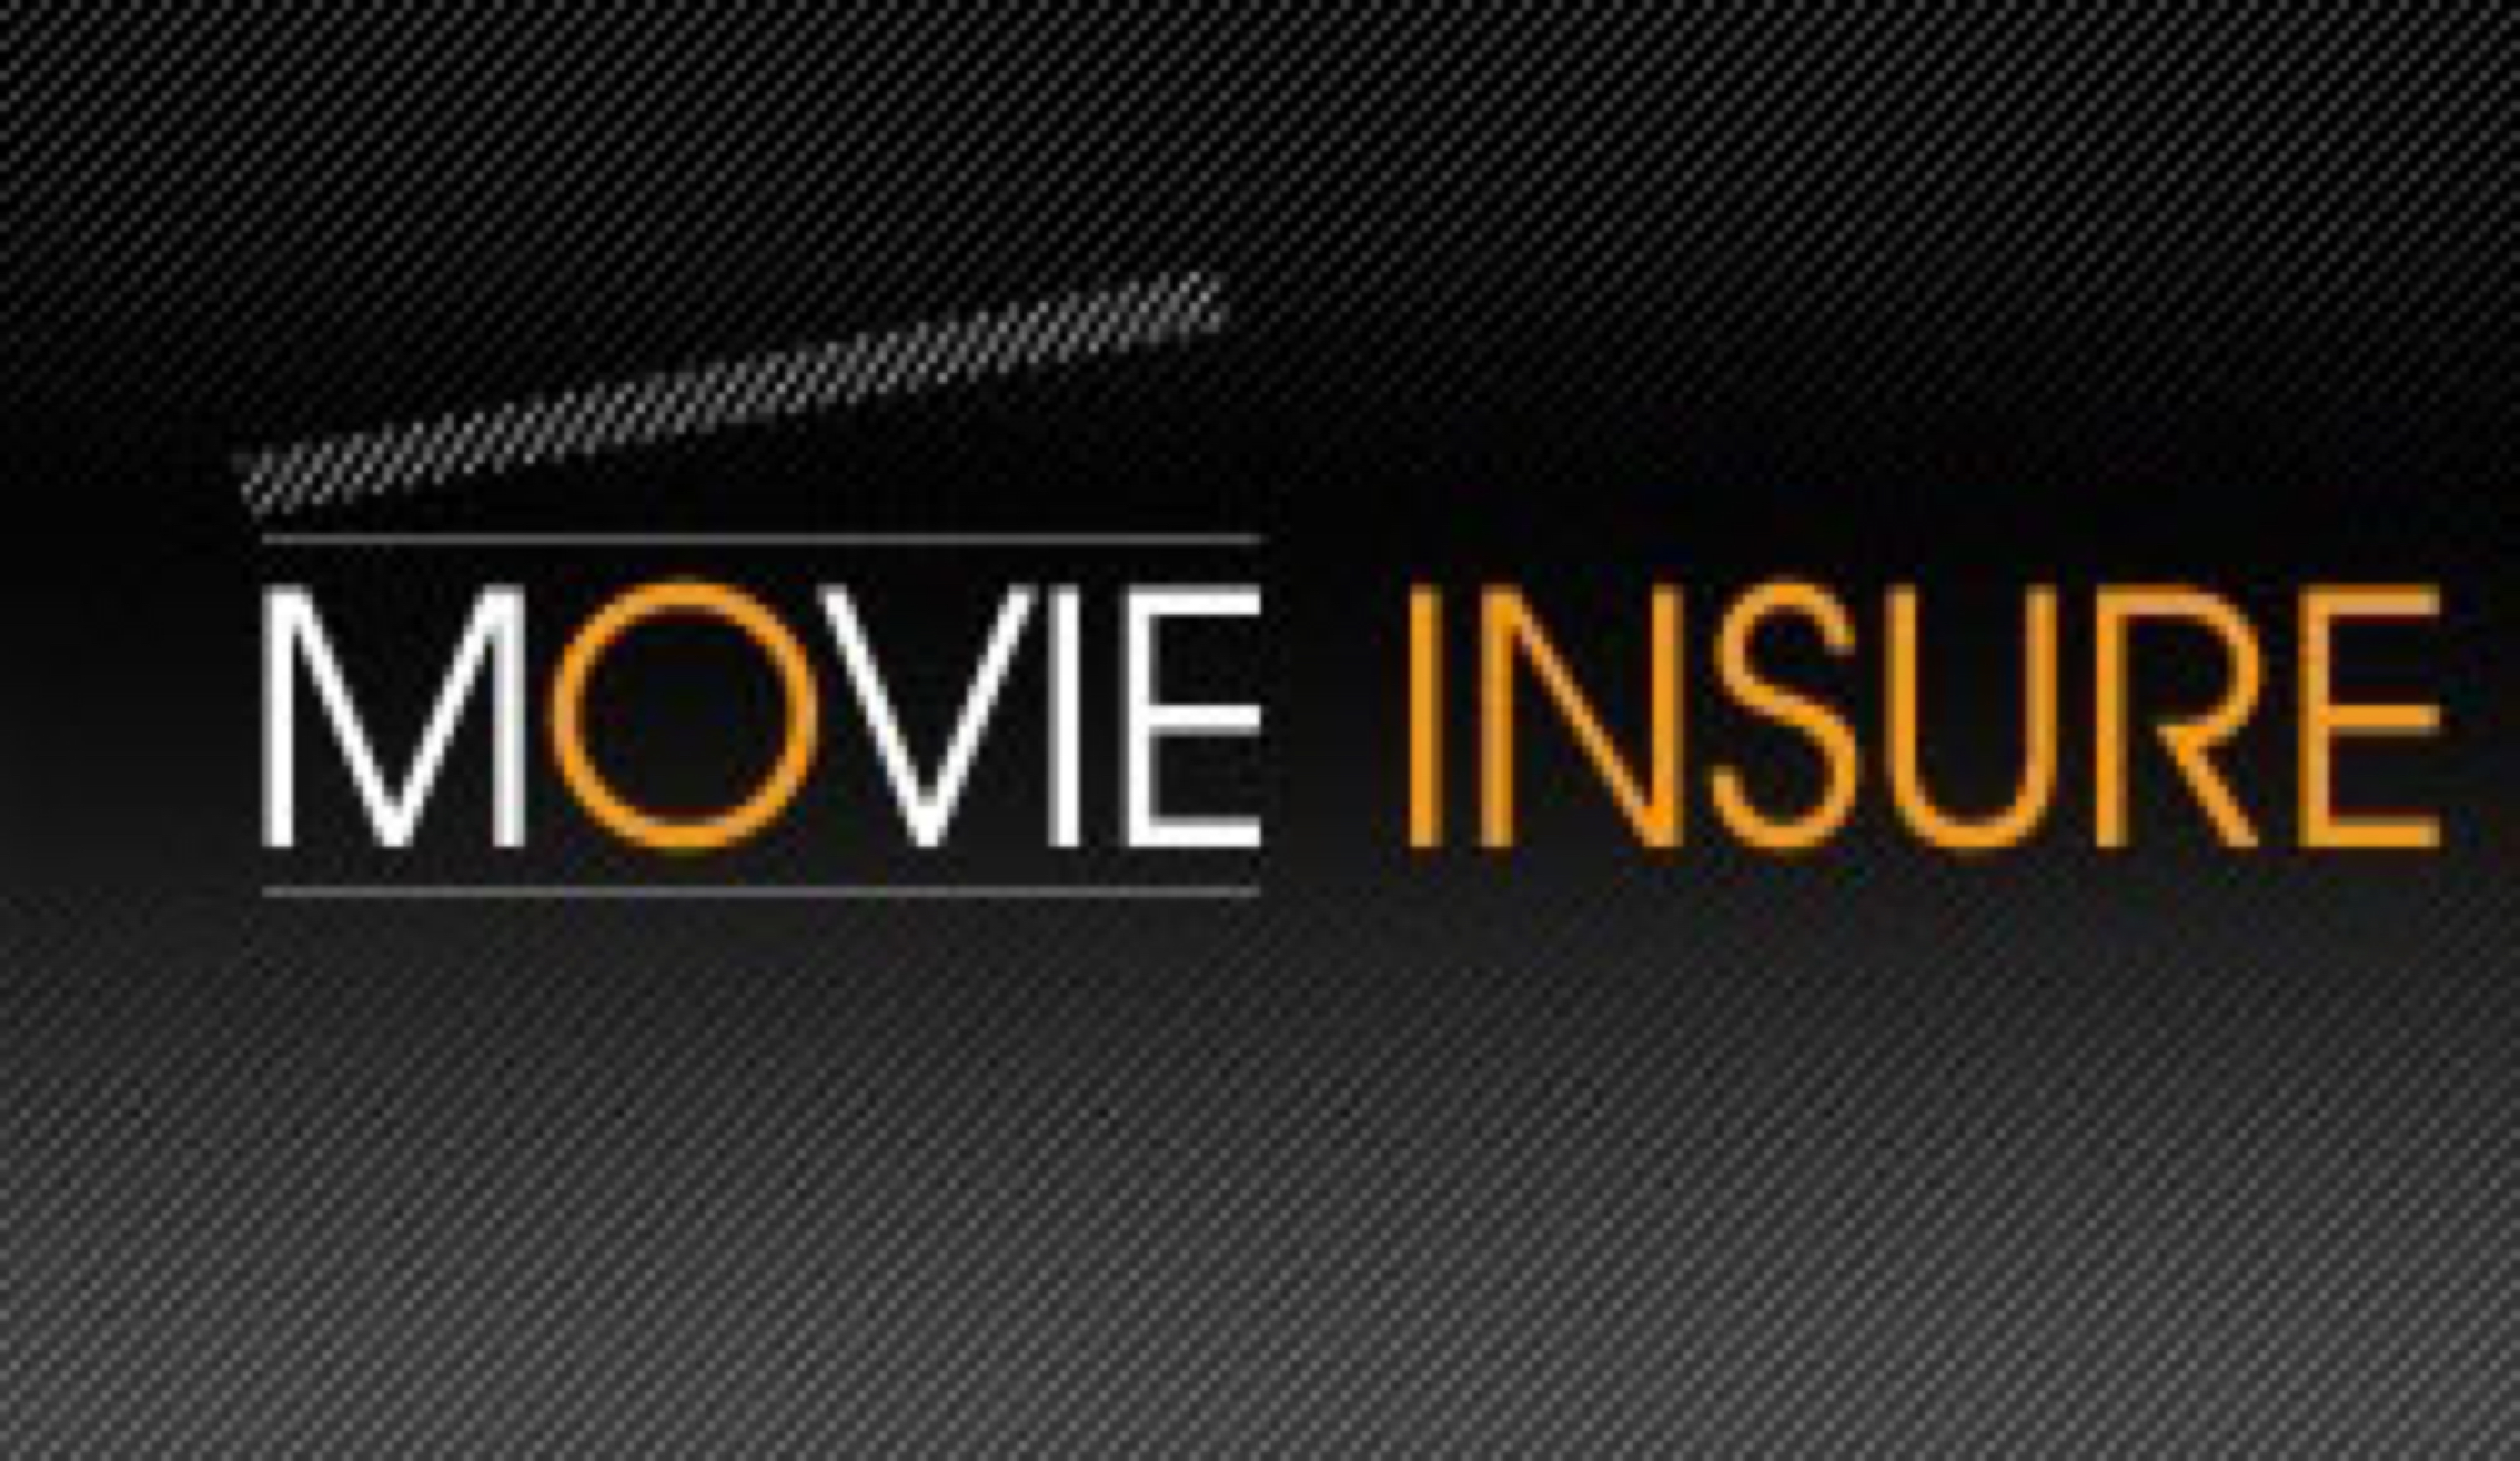 MovieInsure has made our list of the best film insurance companies of 2019 for their customer care.